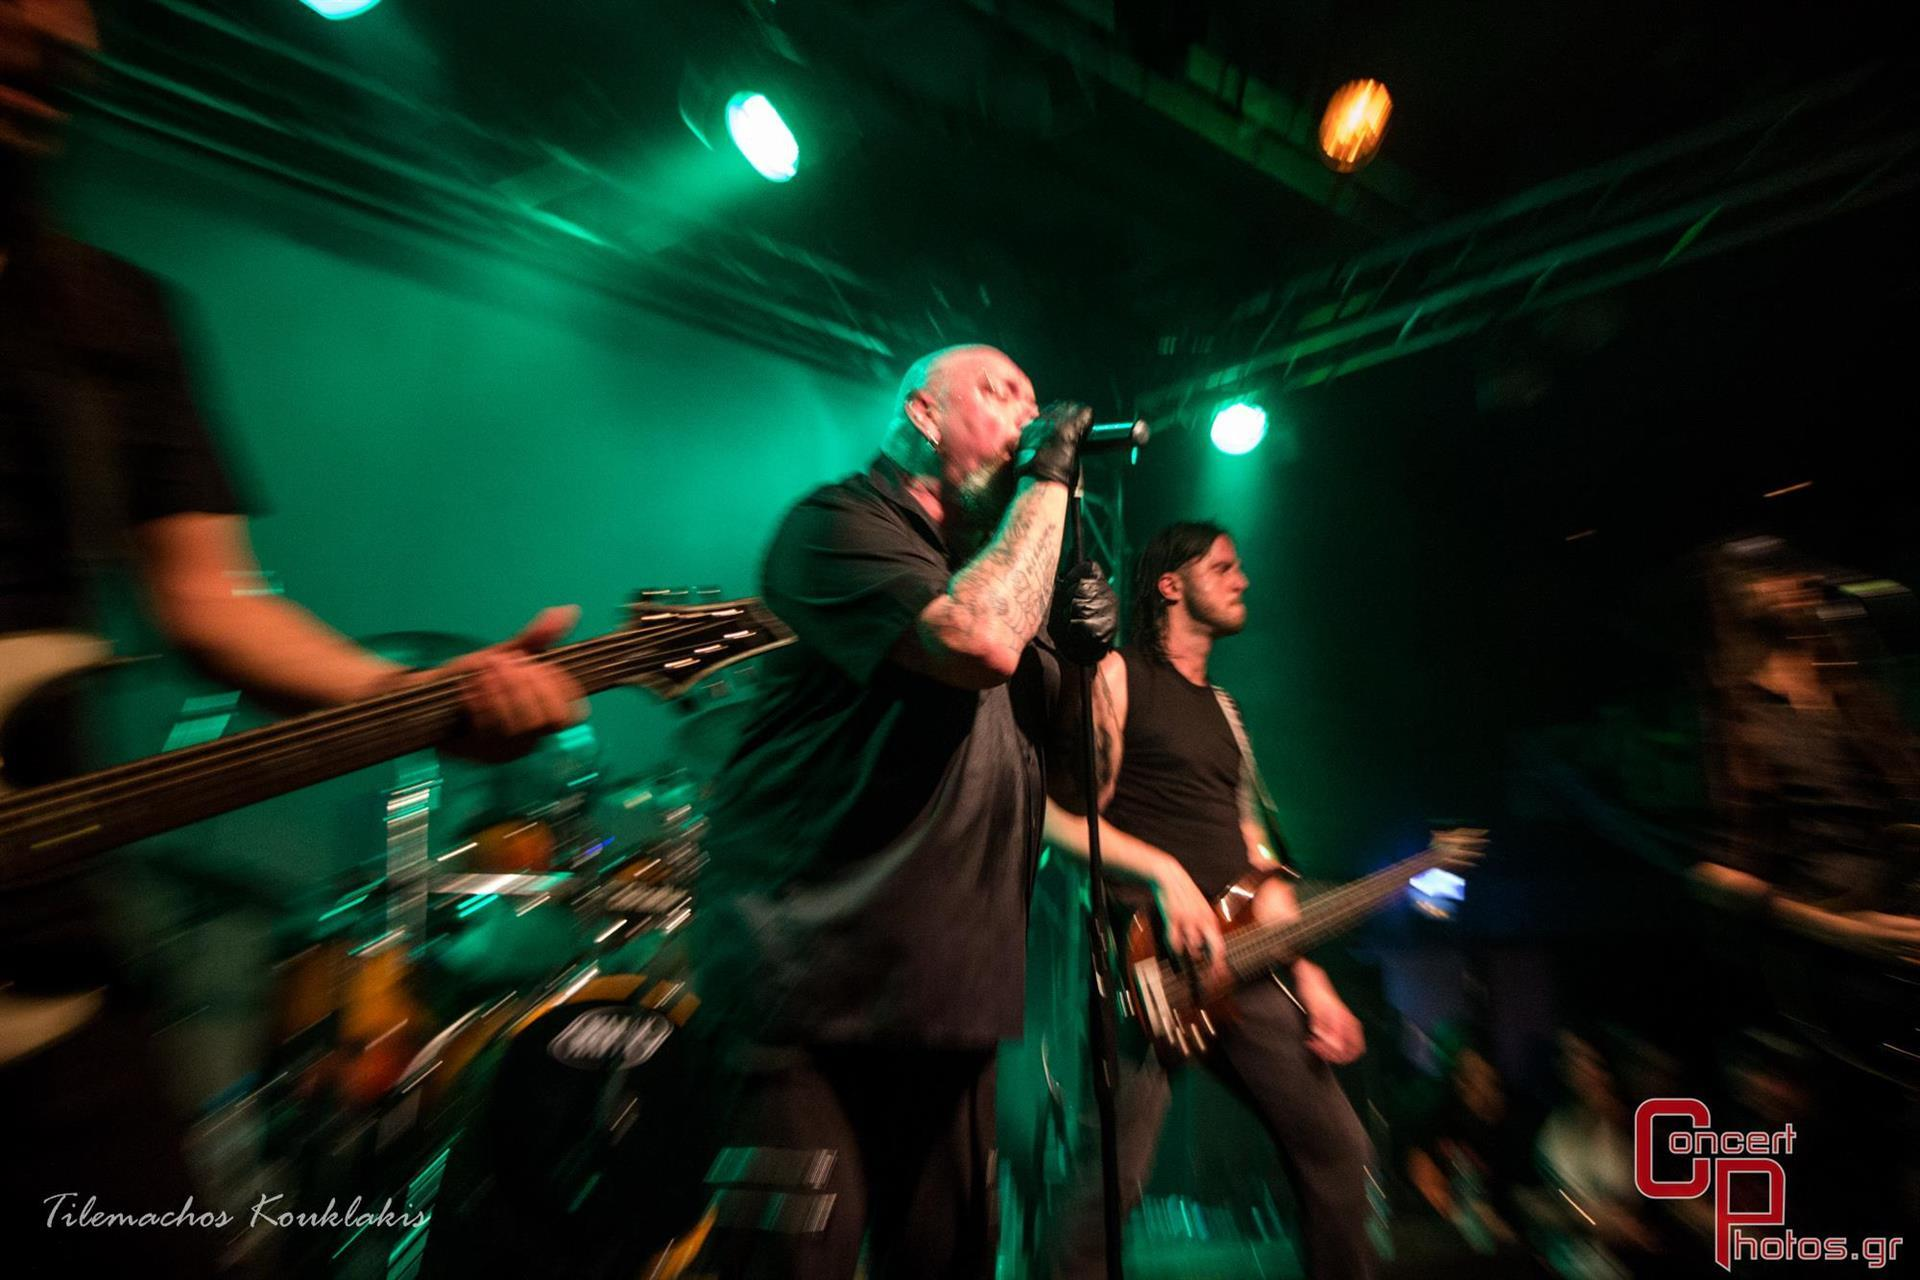 Paul Di Anno -Paul Di Anno  photographer:  - IMG_9469